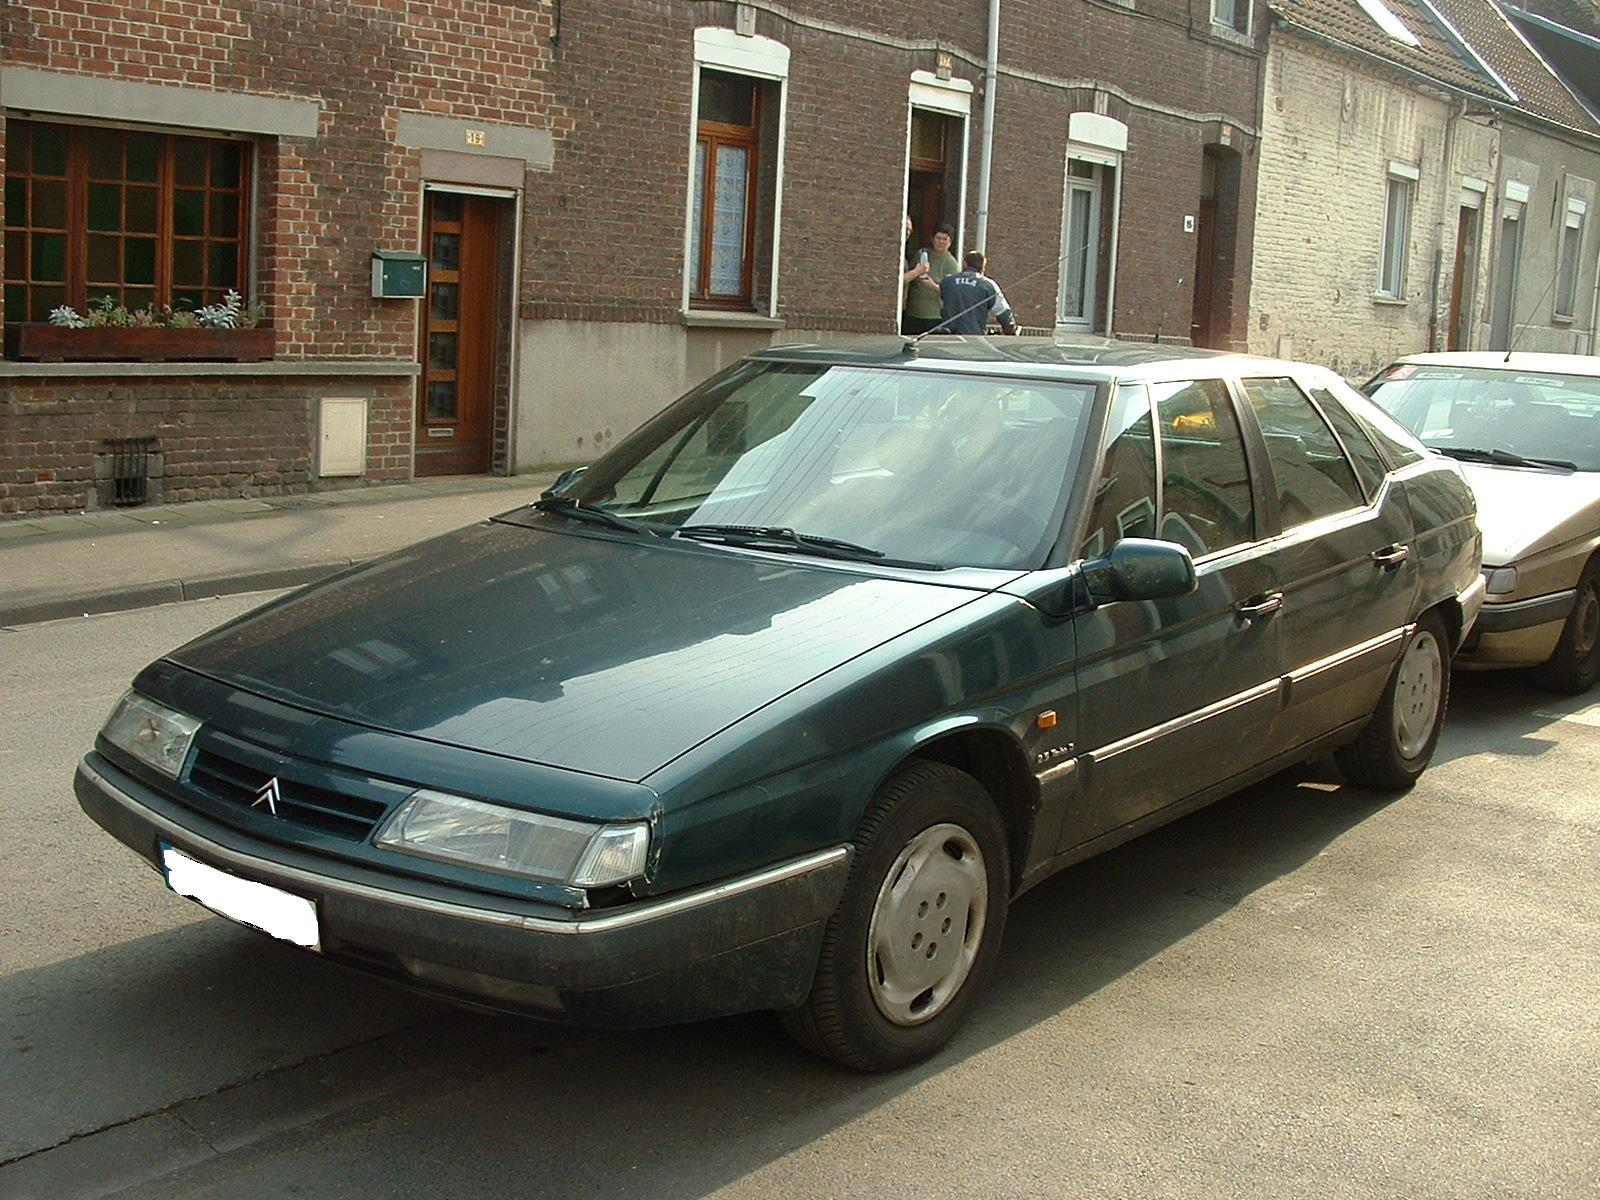 Citroen xm turbo pictures & photos, information of